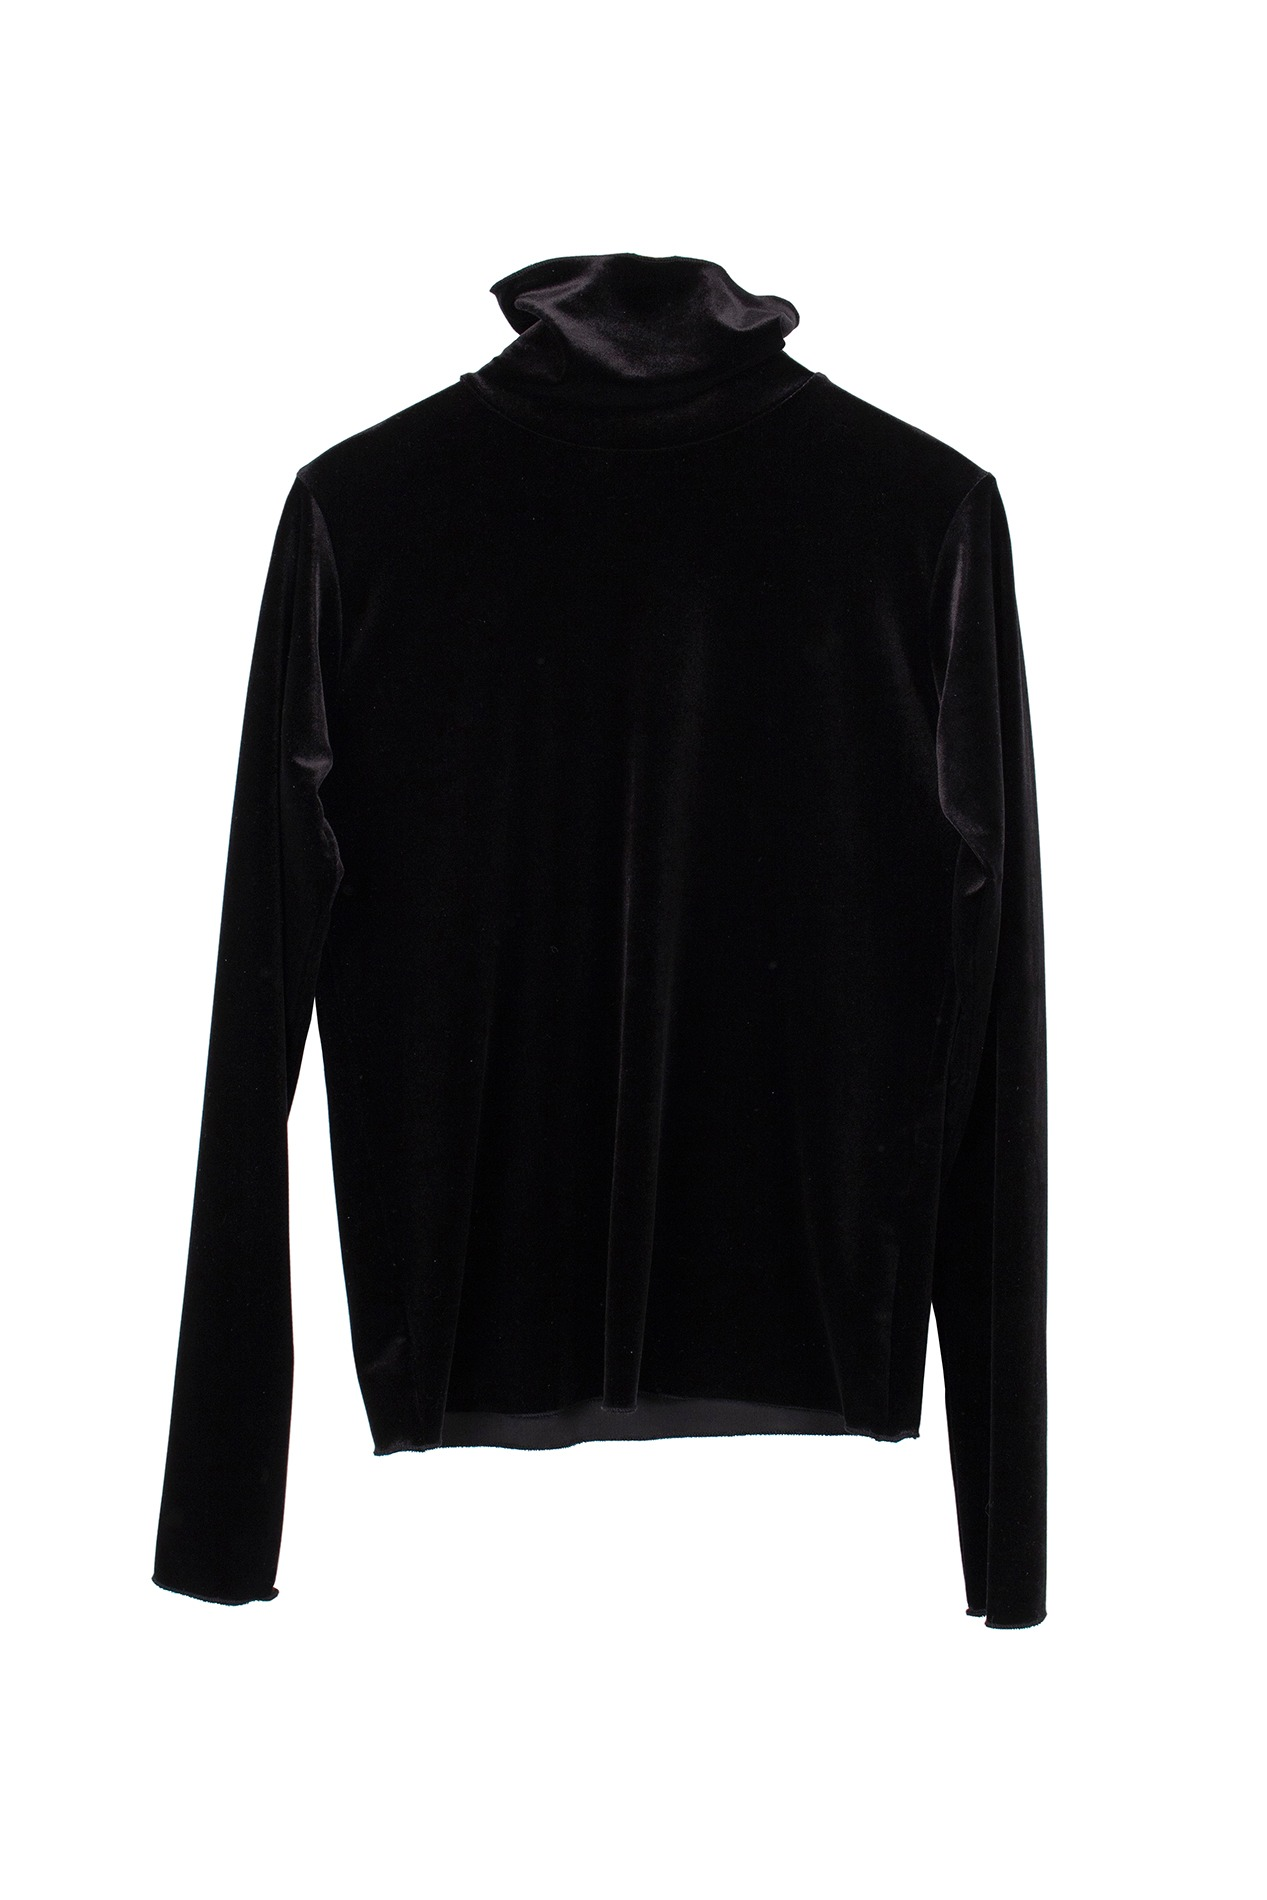 Noah blouse (black)